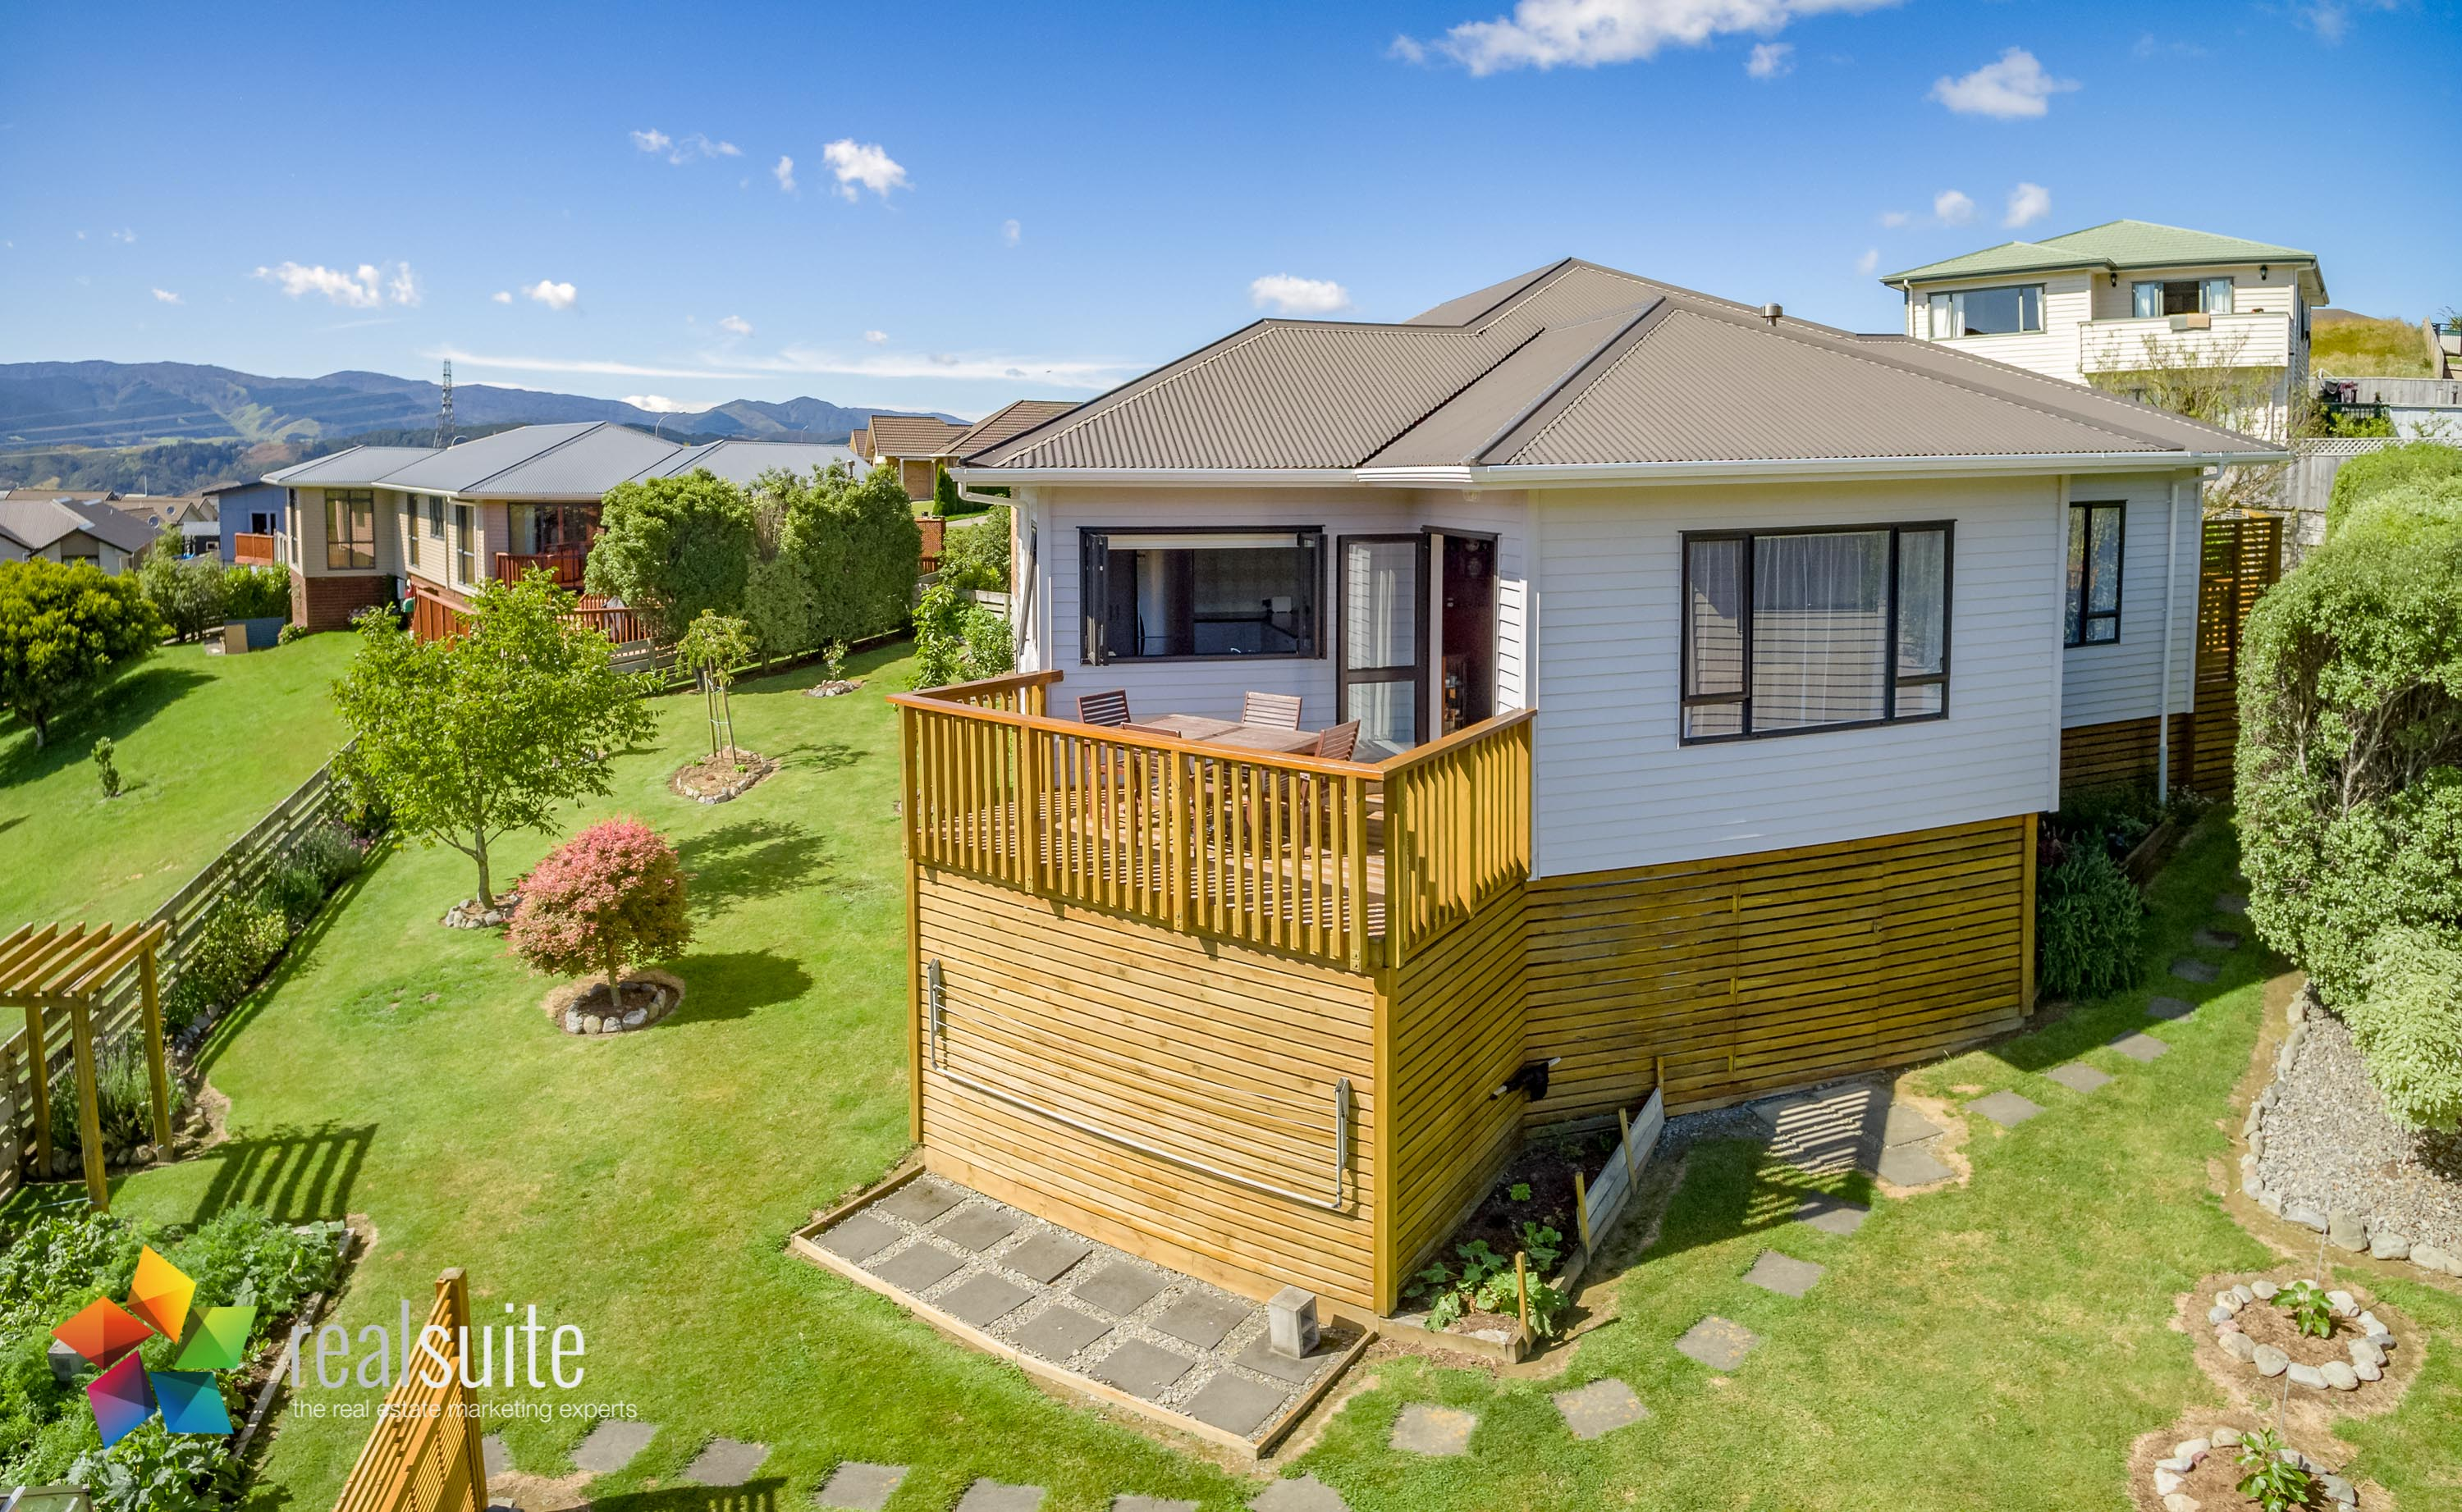 9 McEwen Crescent, Riverstone Terraces Aerial 0379-Pano